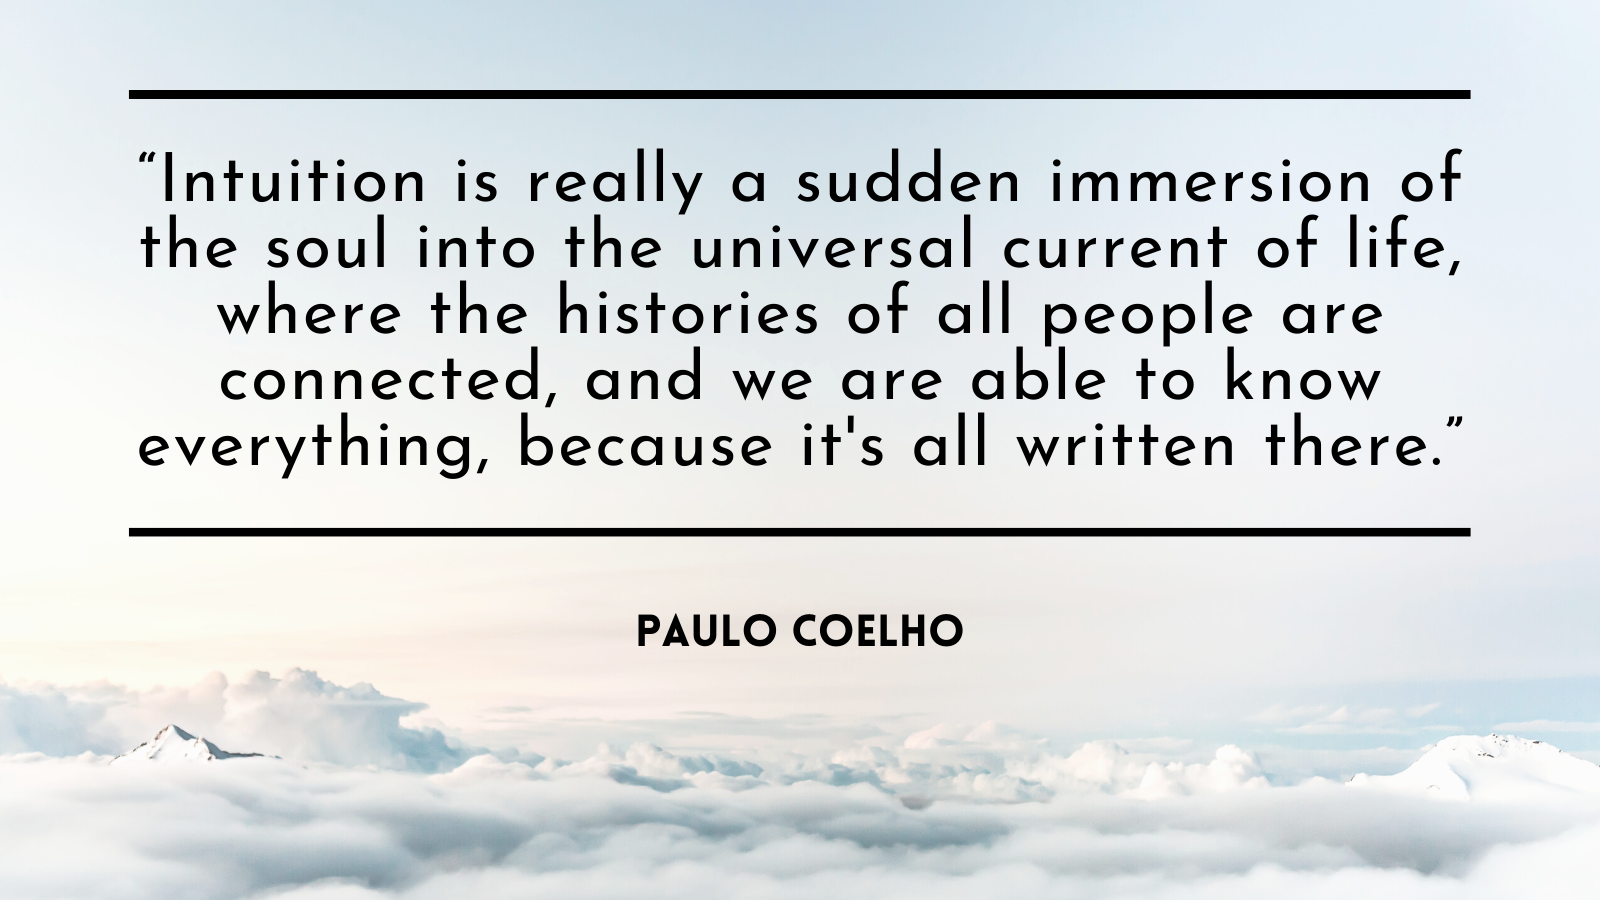 """""""Intuition is really a sudden immersion of the soul into the universal current of life, where the histories of all people are connected, and we are able to know everything, because it's all written there."""" -Paulo Coehlo"""